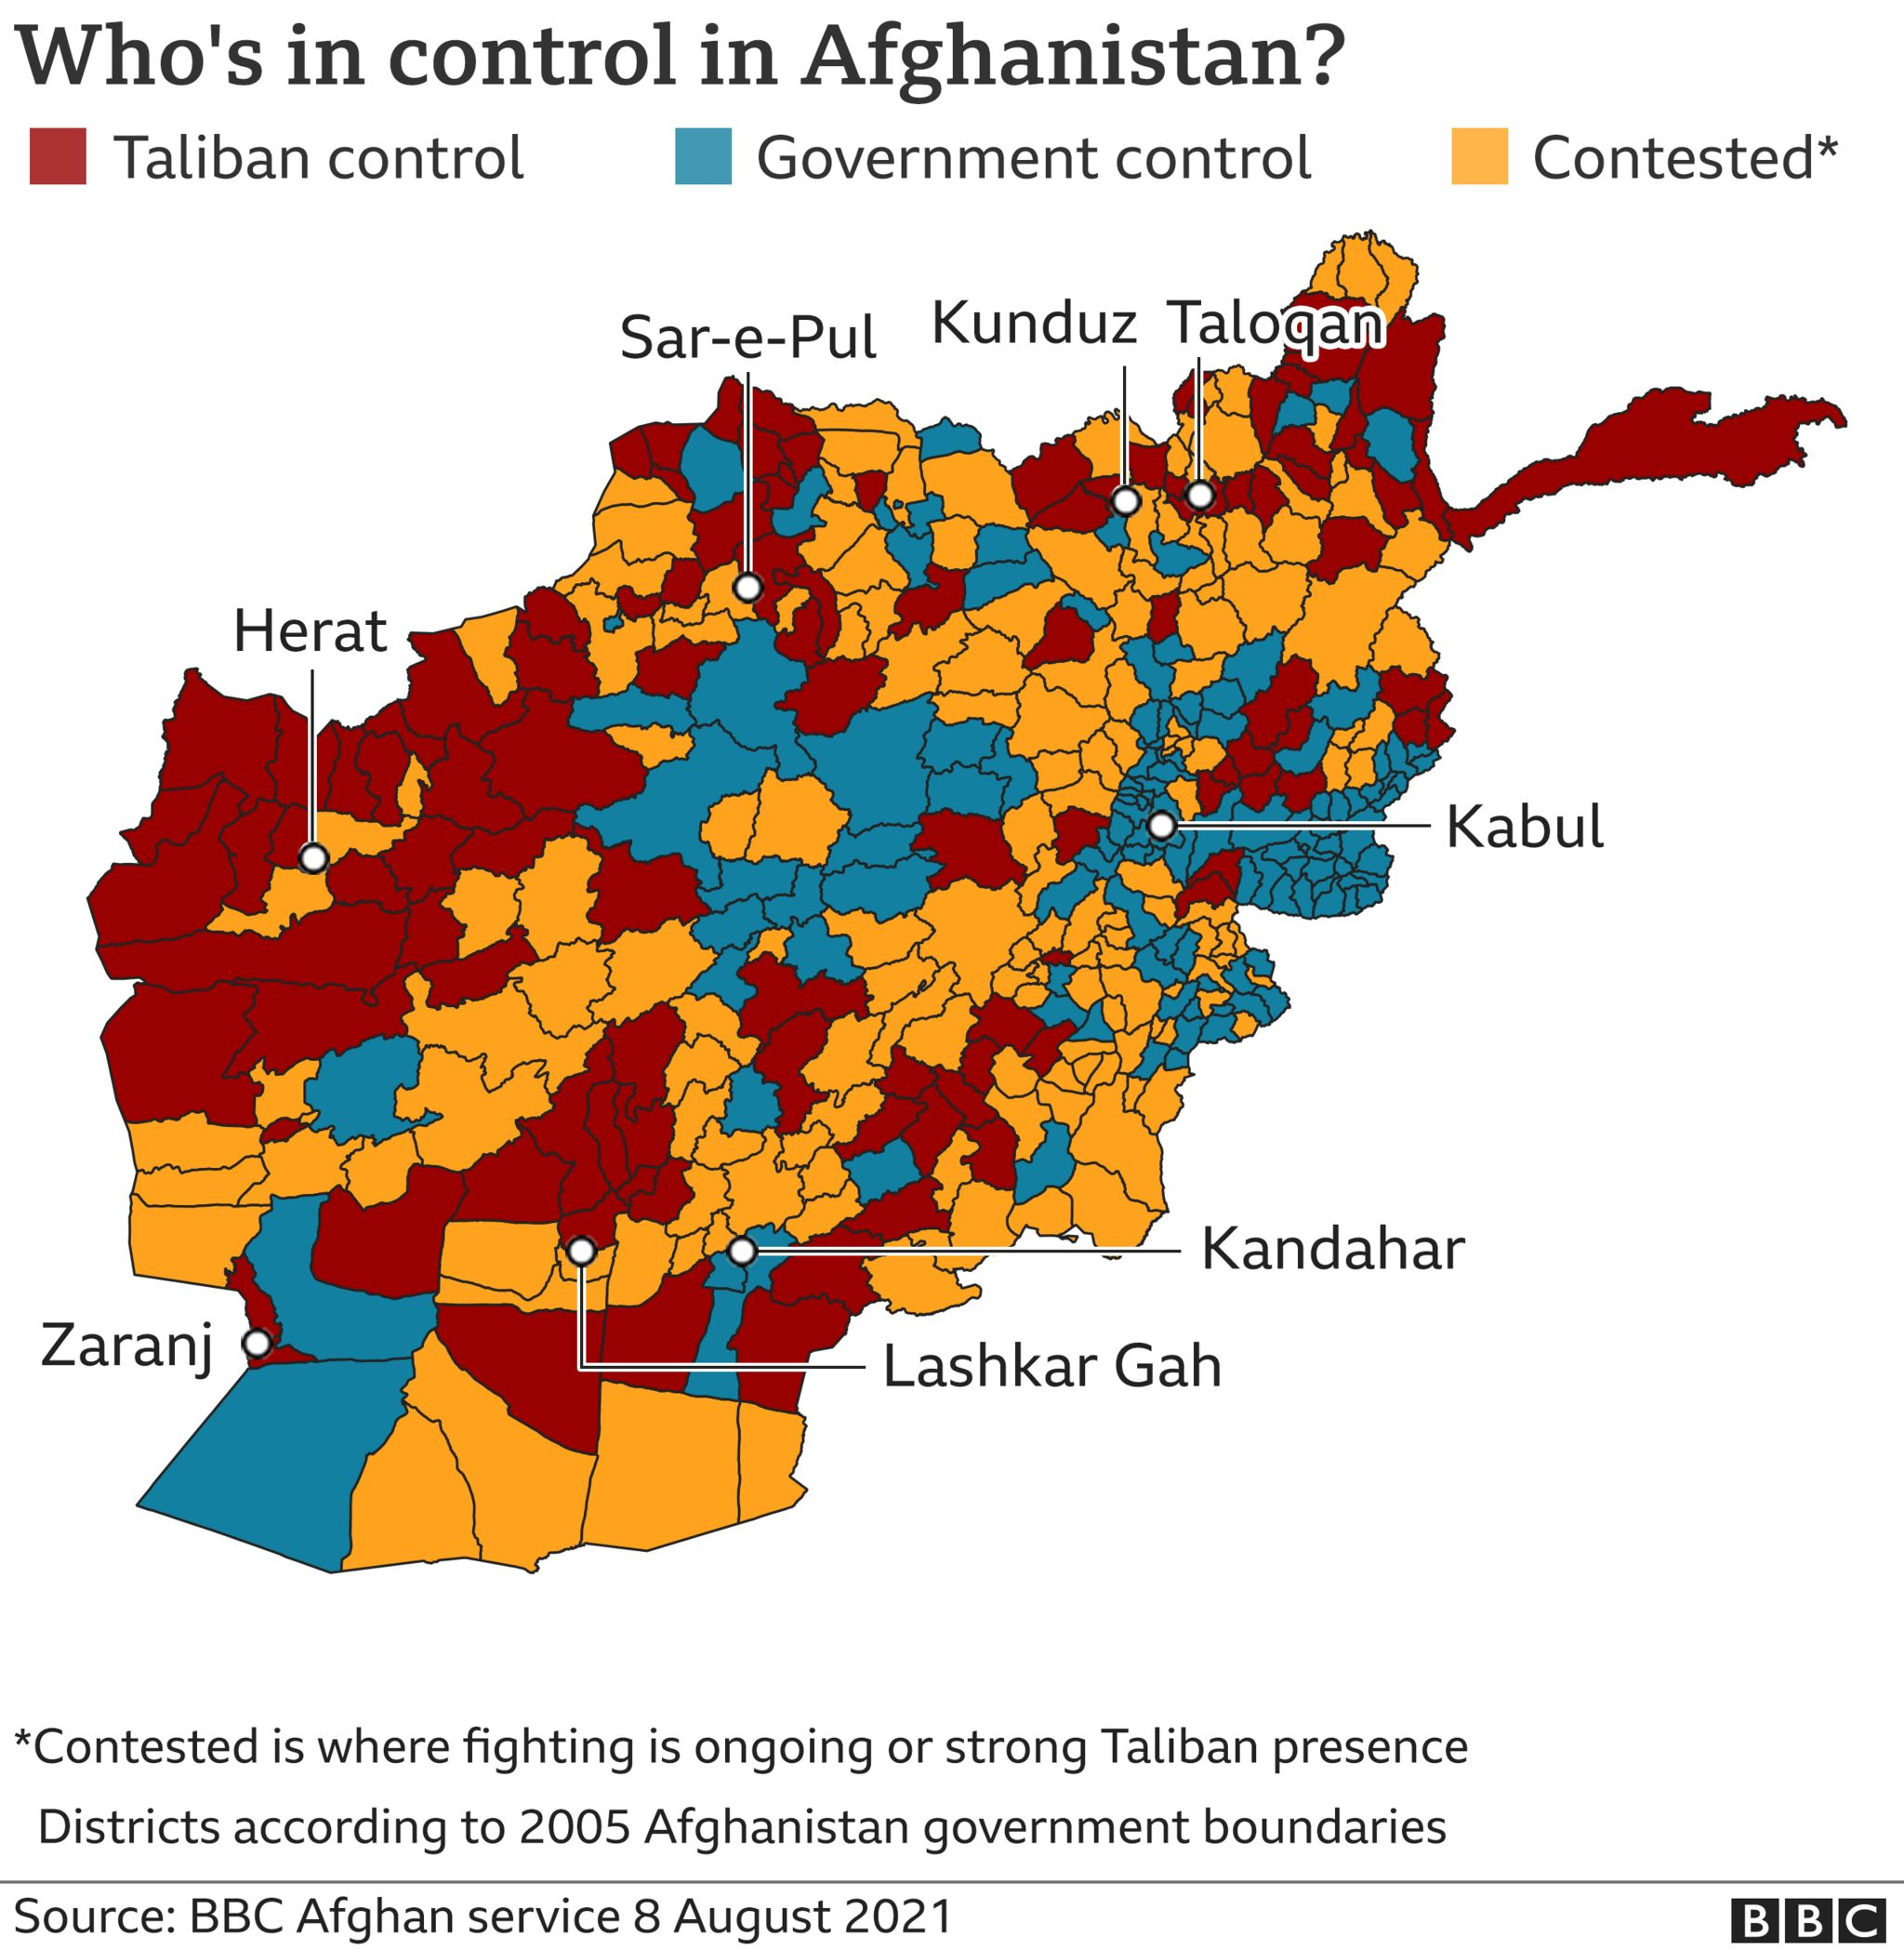 Image shows areas of control in Afghanistan